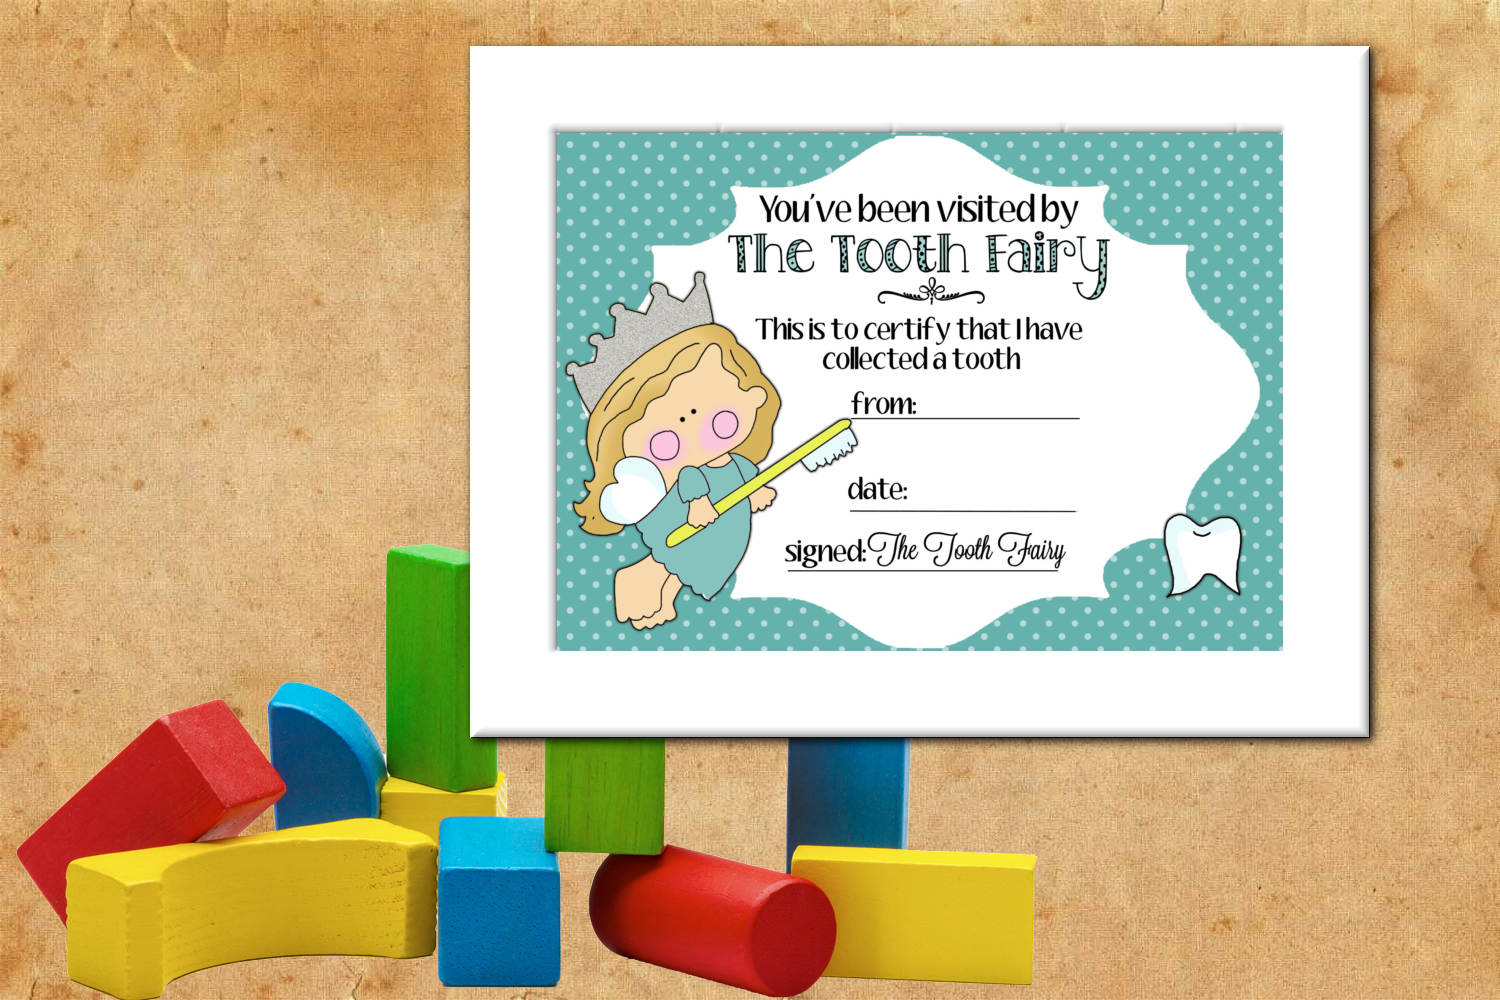 Tooth Fairy Certificate - Blue, 5 x 7 inches example image 2